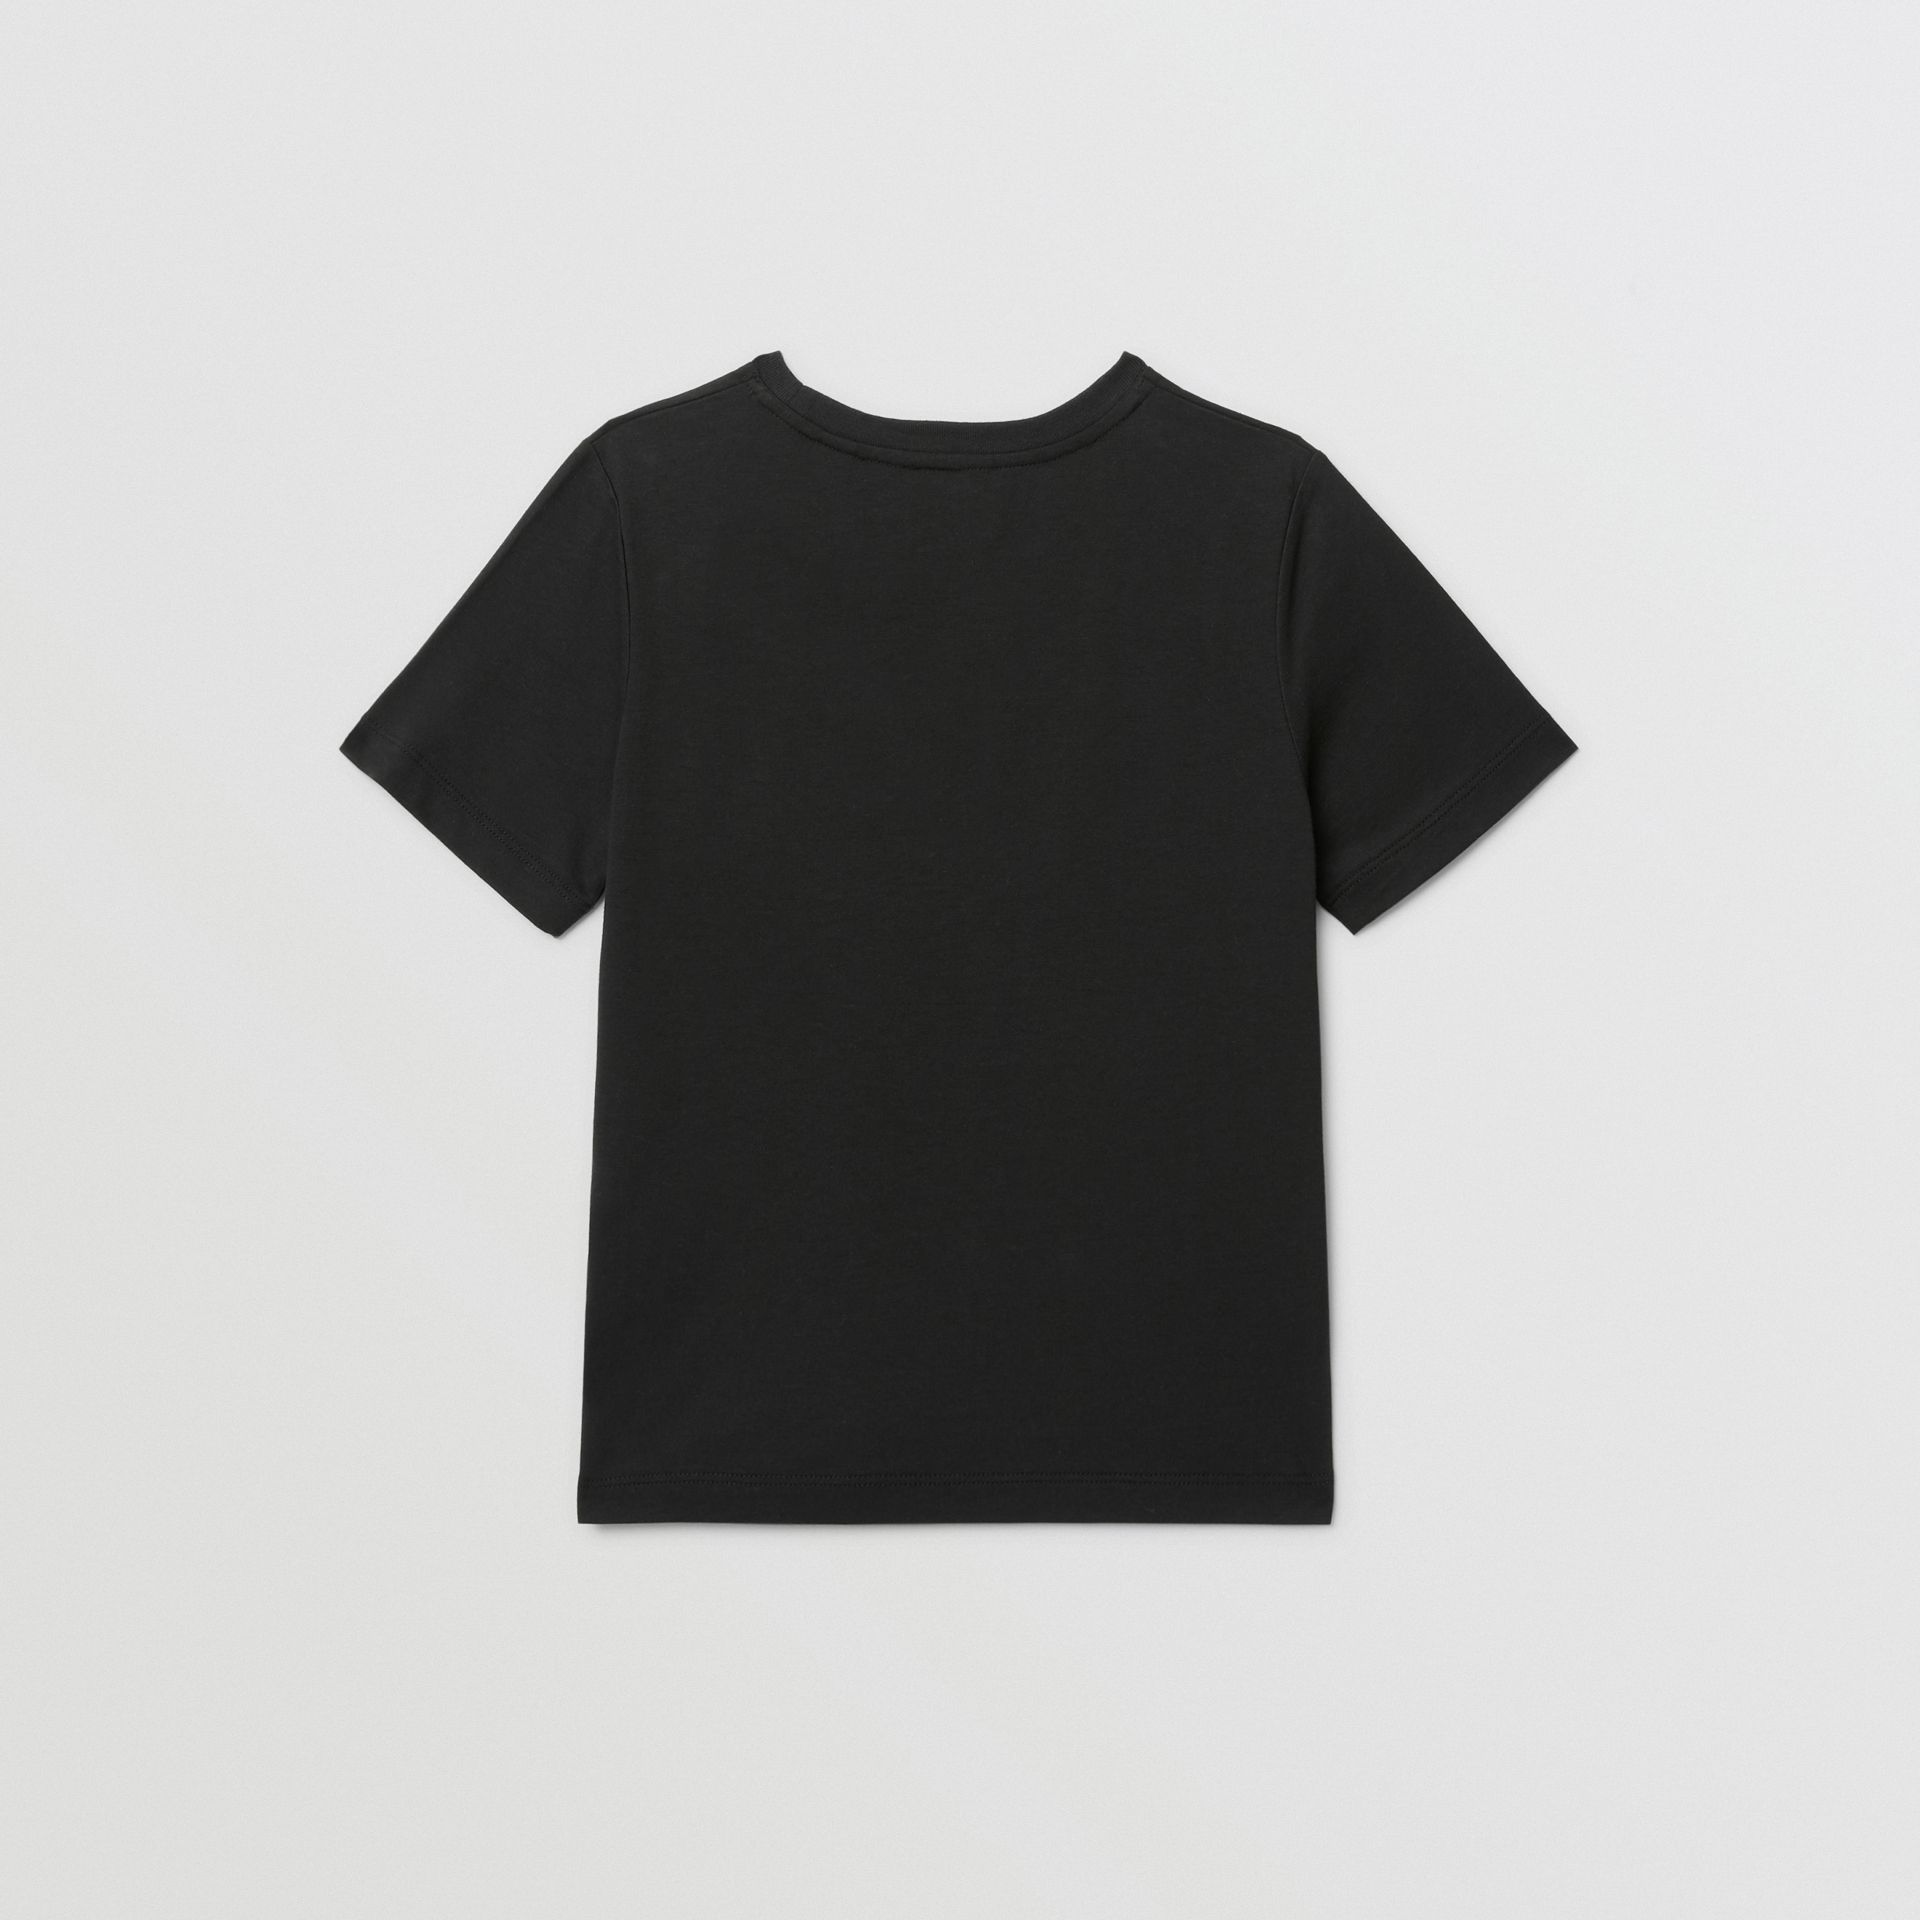 Confectionery Print Cotton T-shirt in Black | Burberry - gallery image 3